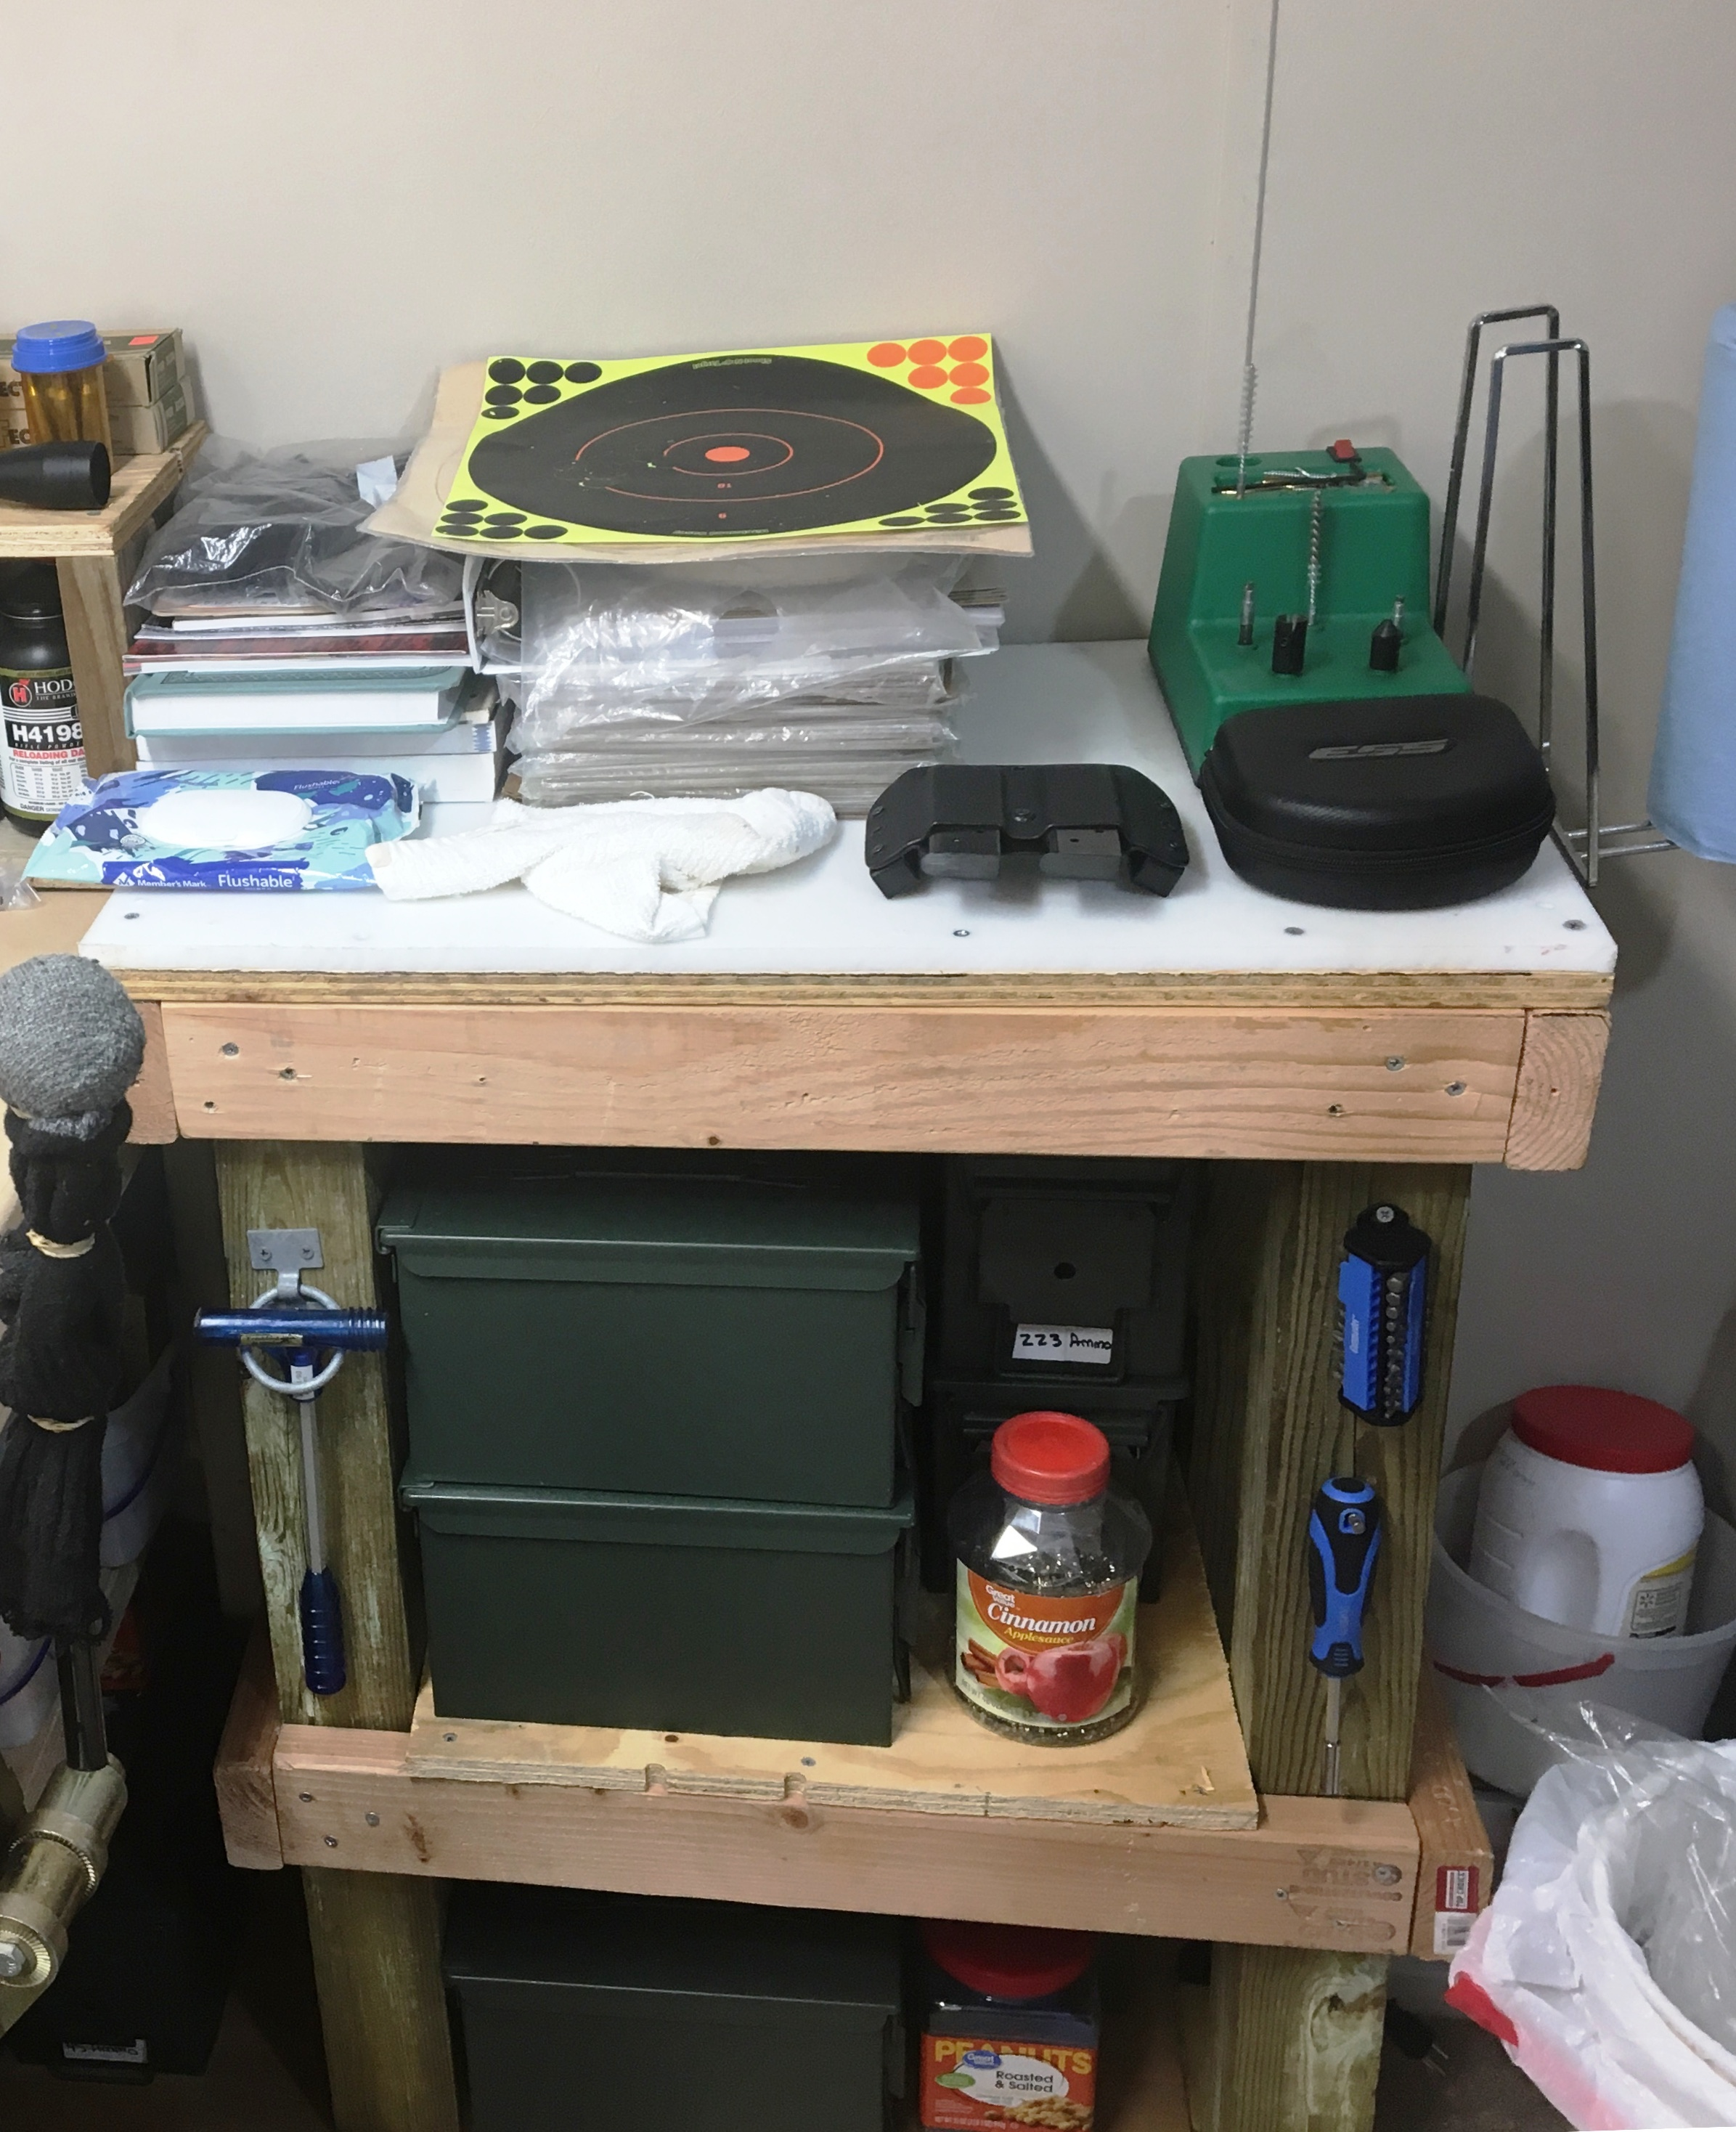 Swell New Reloading Bench Mississippi Gun Owners Community For Alphanode Cool Chair Designs And Ideas Alphanodeonline